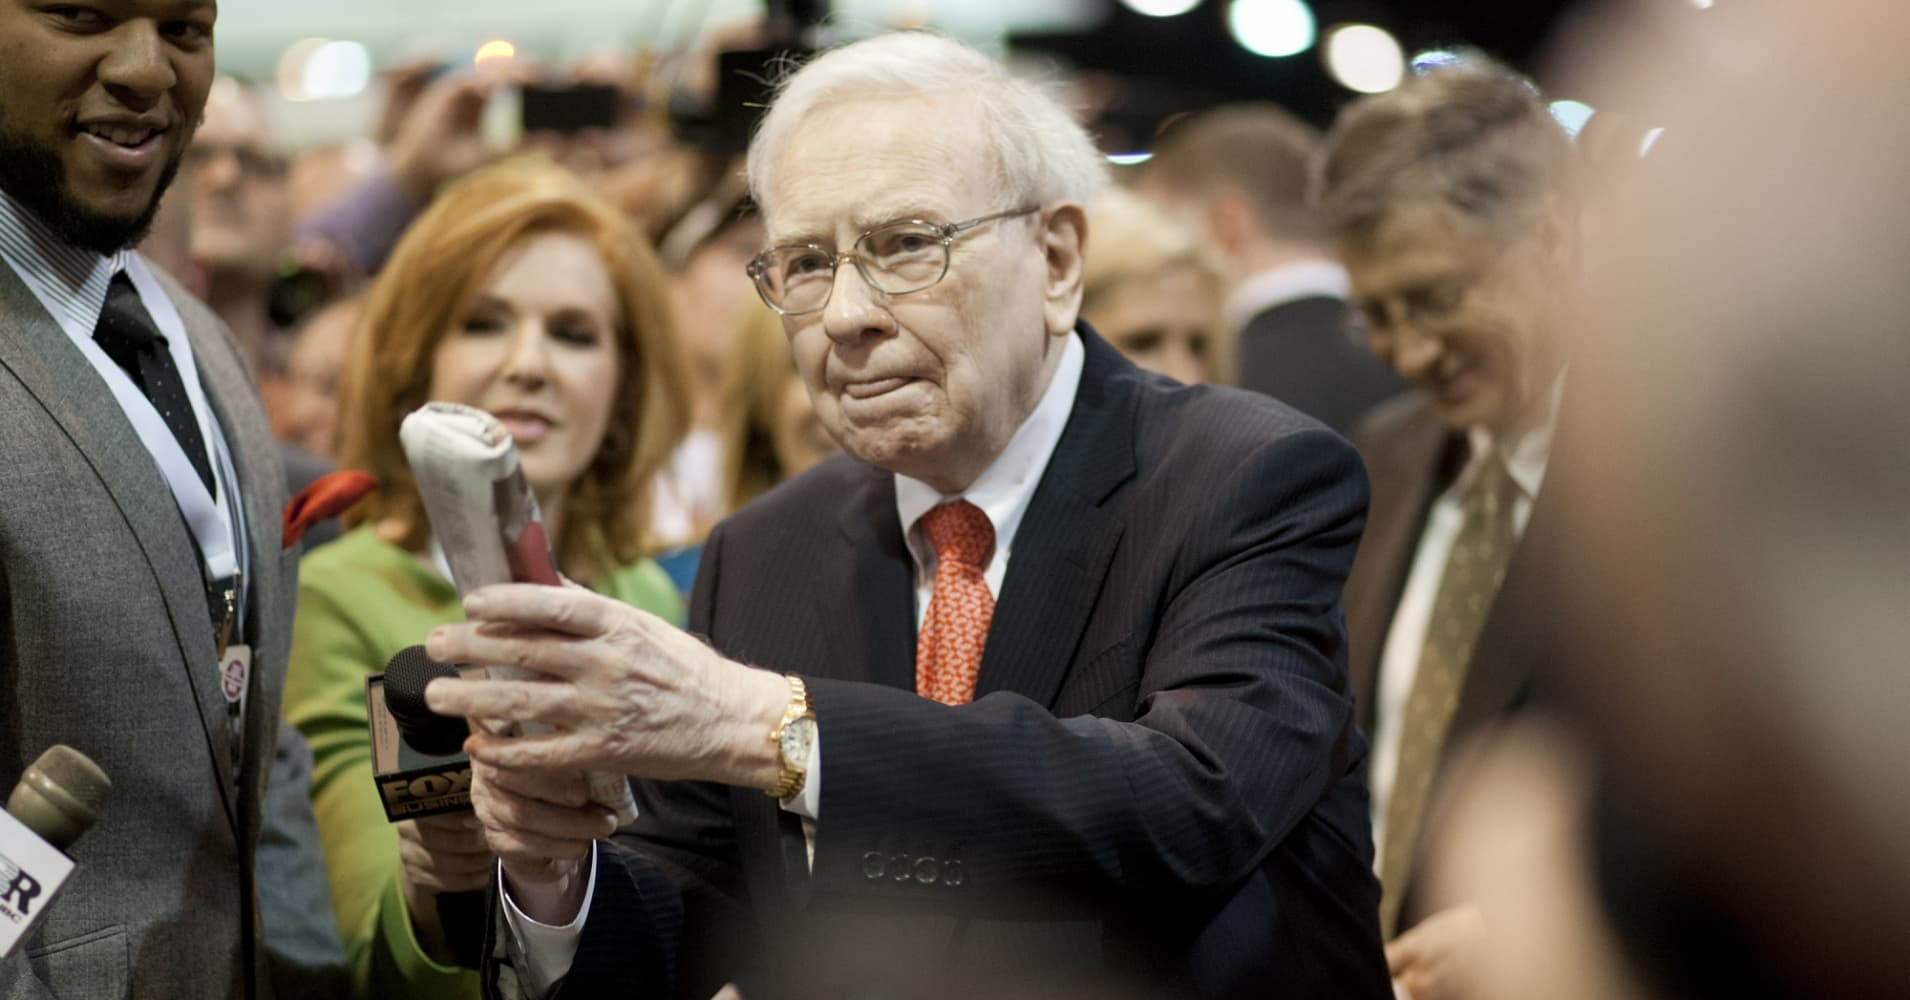 Warren Buffett, chairman and chief executive officer of Berkshire Hathaway Inc., prepares to throw a newspaper as he tours the exhibition floor prior to the start of the Berkshire shareholders meeting in Omaha, Nebraska, U.S., on Saturday, May 4, 2013.